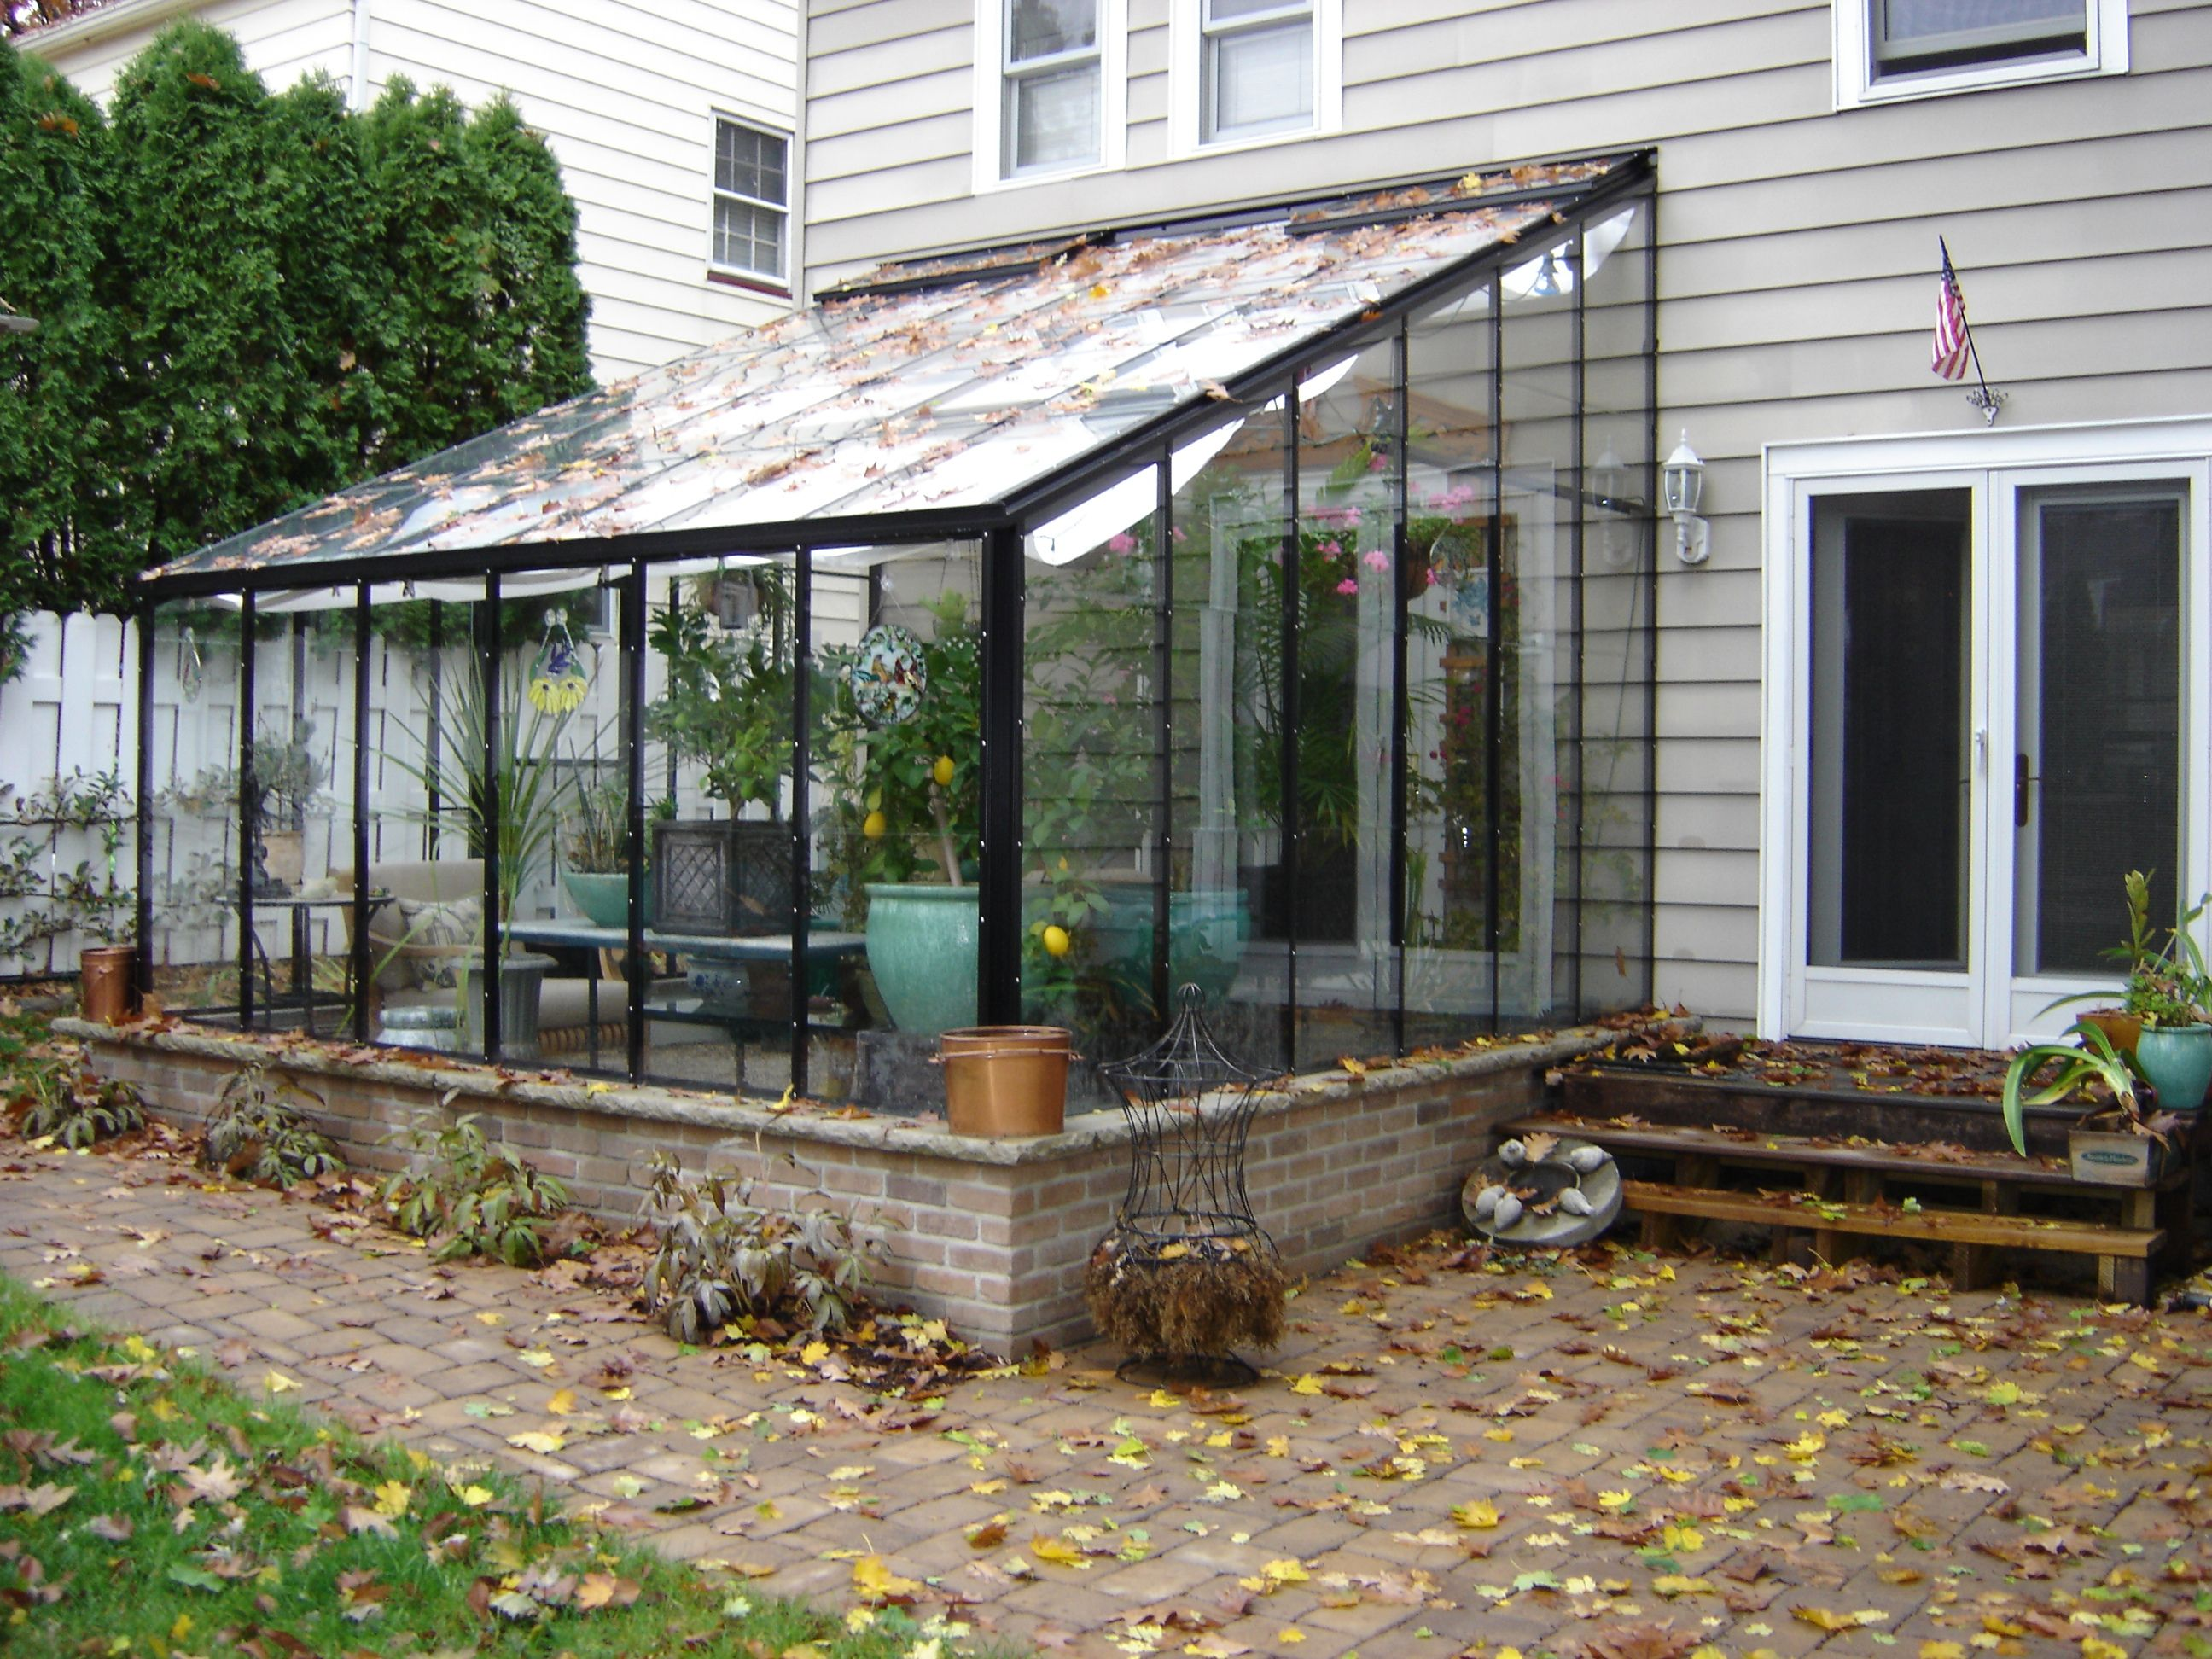 This Acadian Lean To Greenhouse Has An Optional Black Frame The Customers Use This As Double Duty Of A Greenhouse And A Lean To Greenhouse Greenhouse Lean To